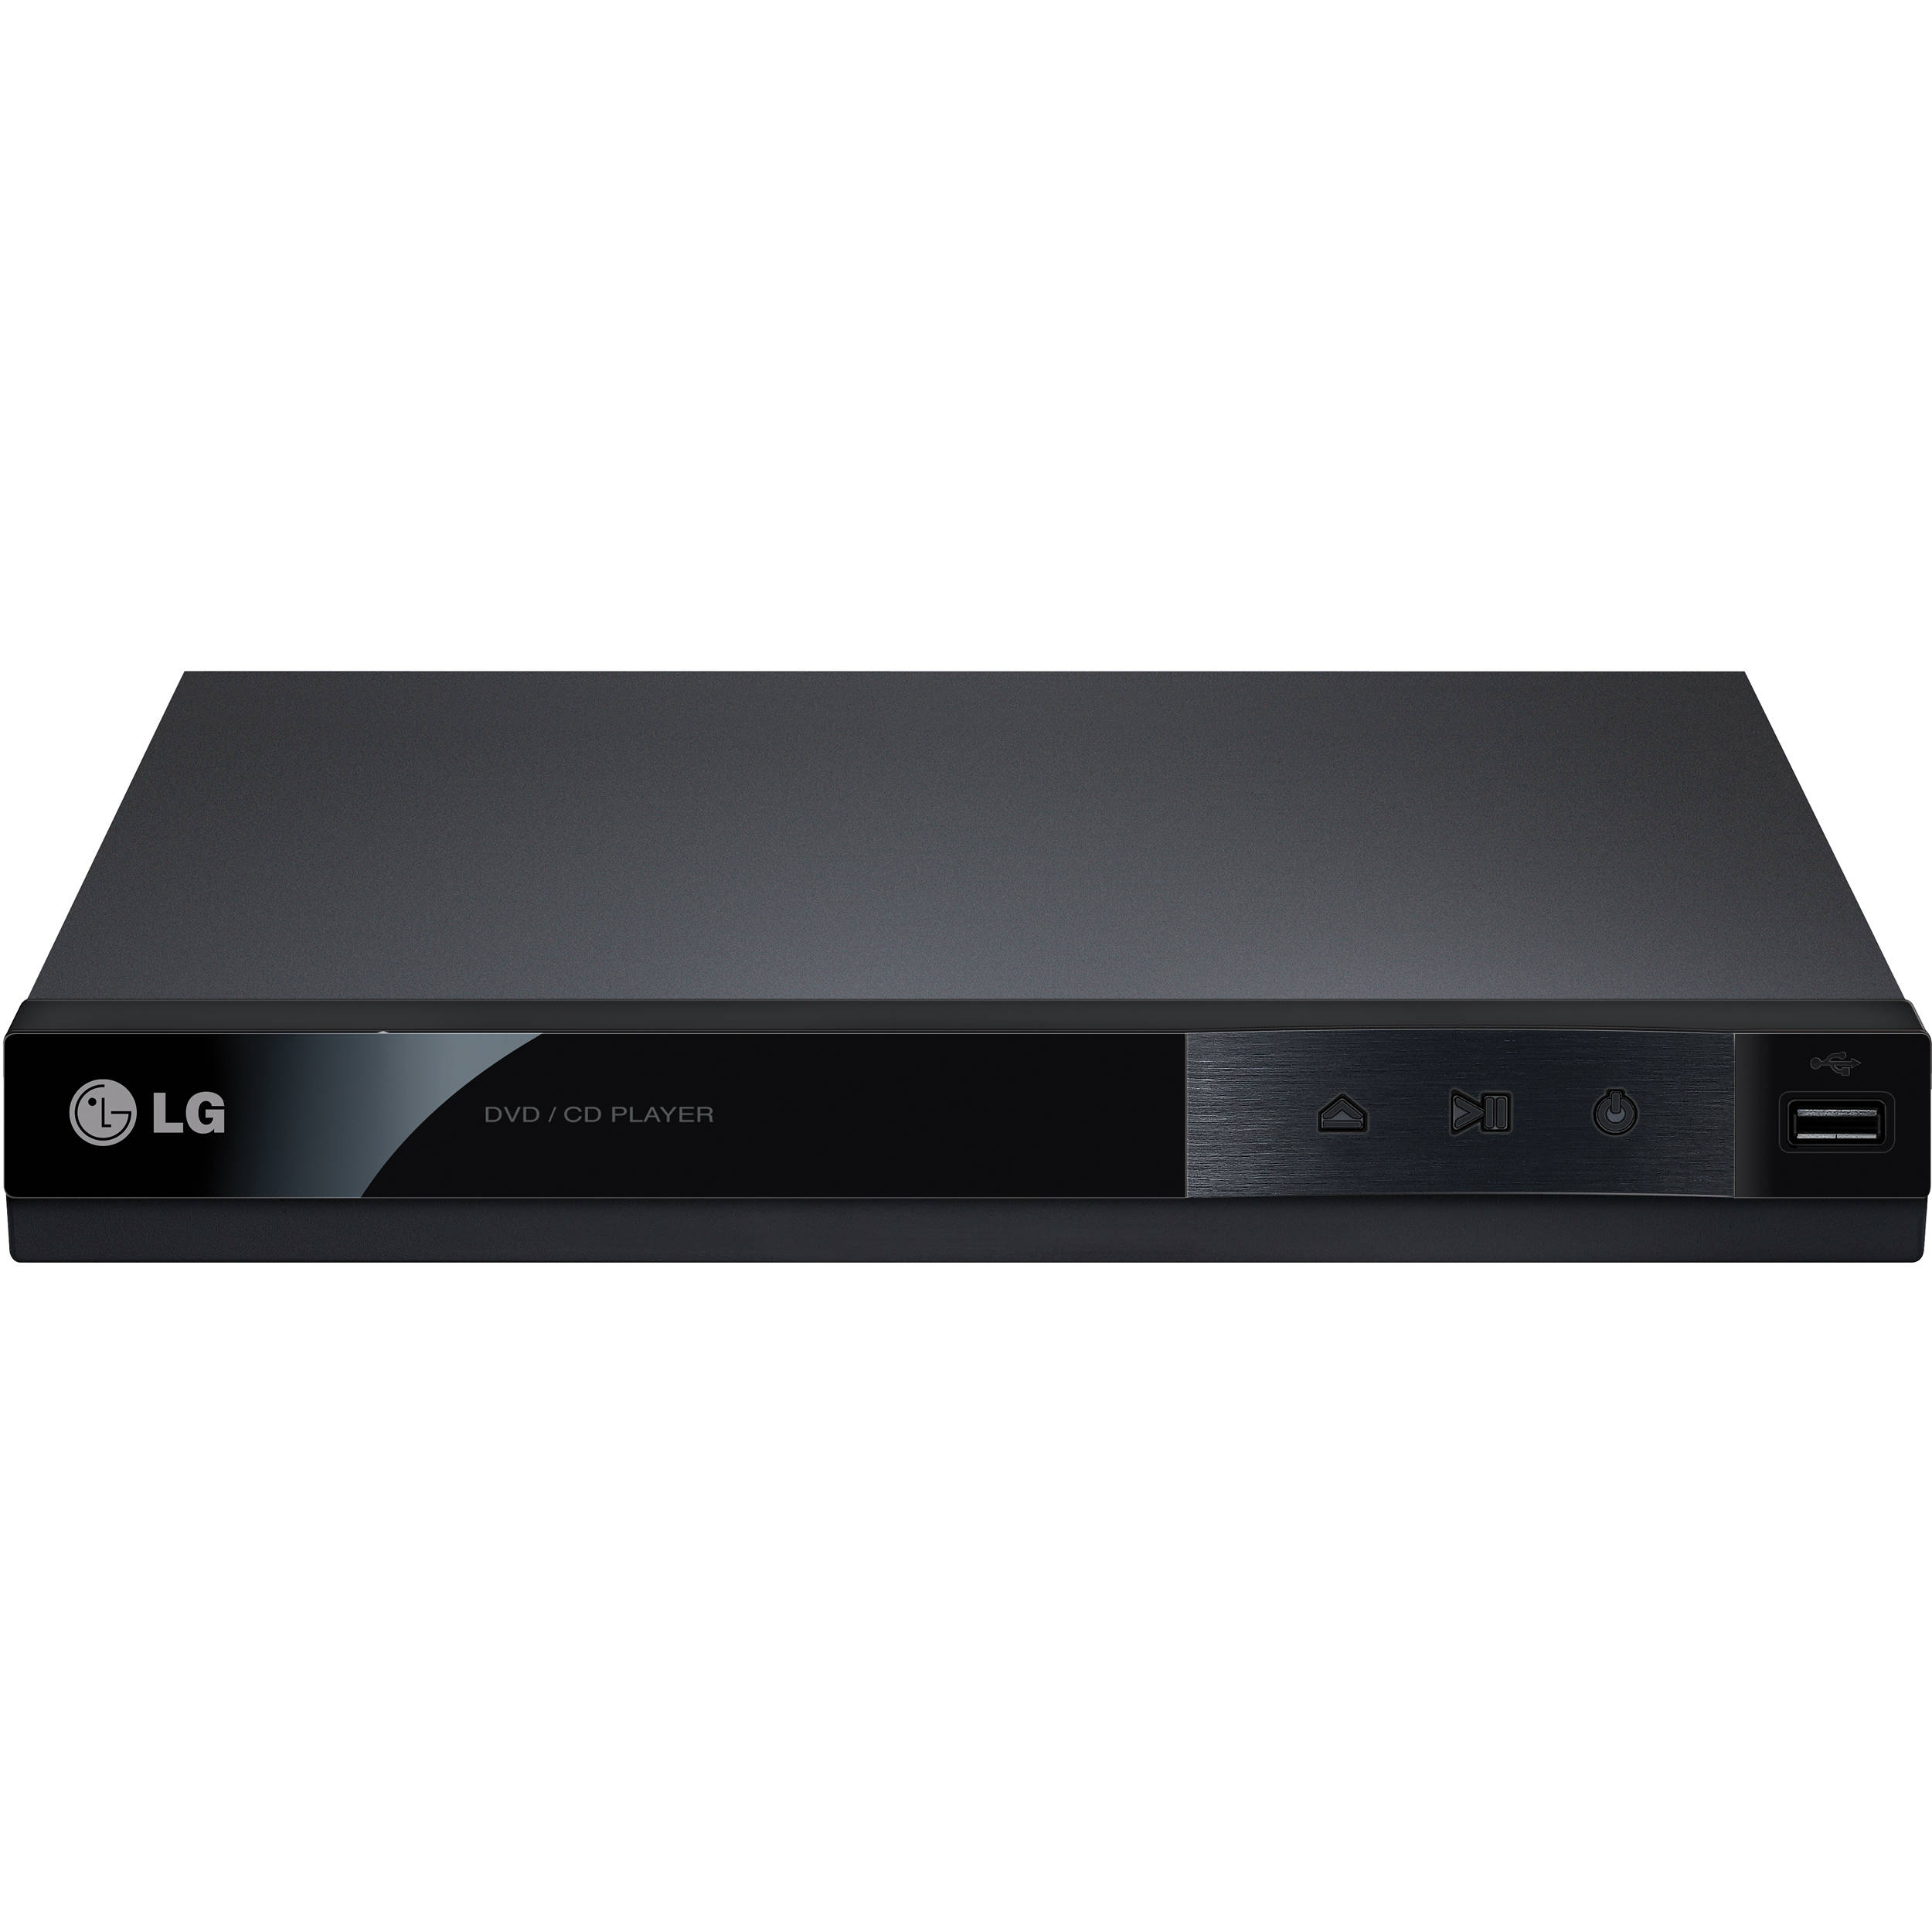 LG DP122 DVD Player with USB Direct Recording